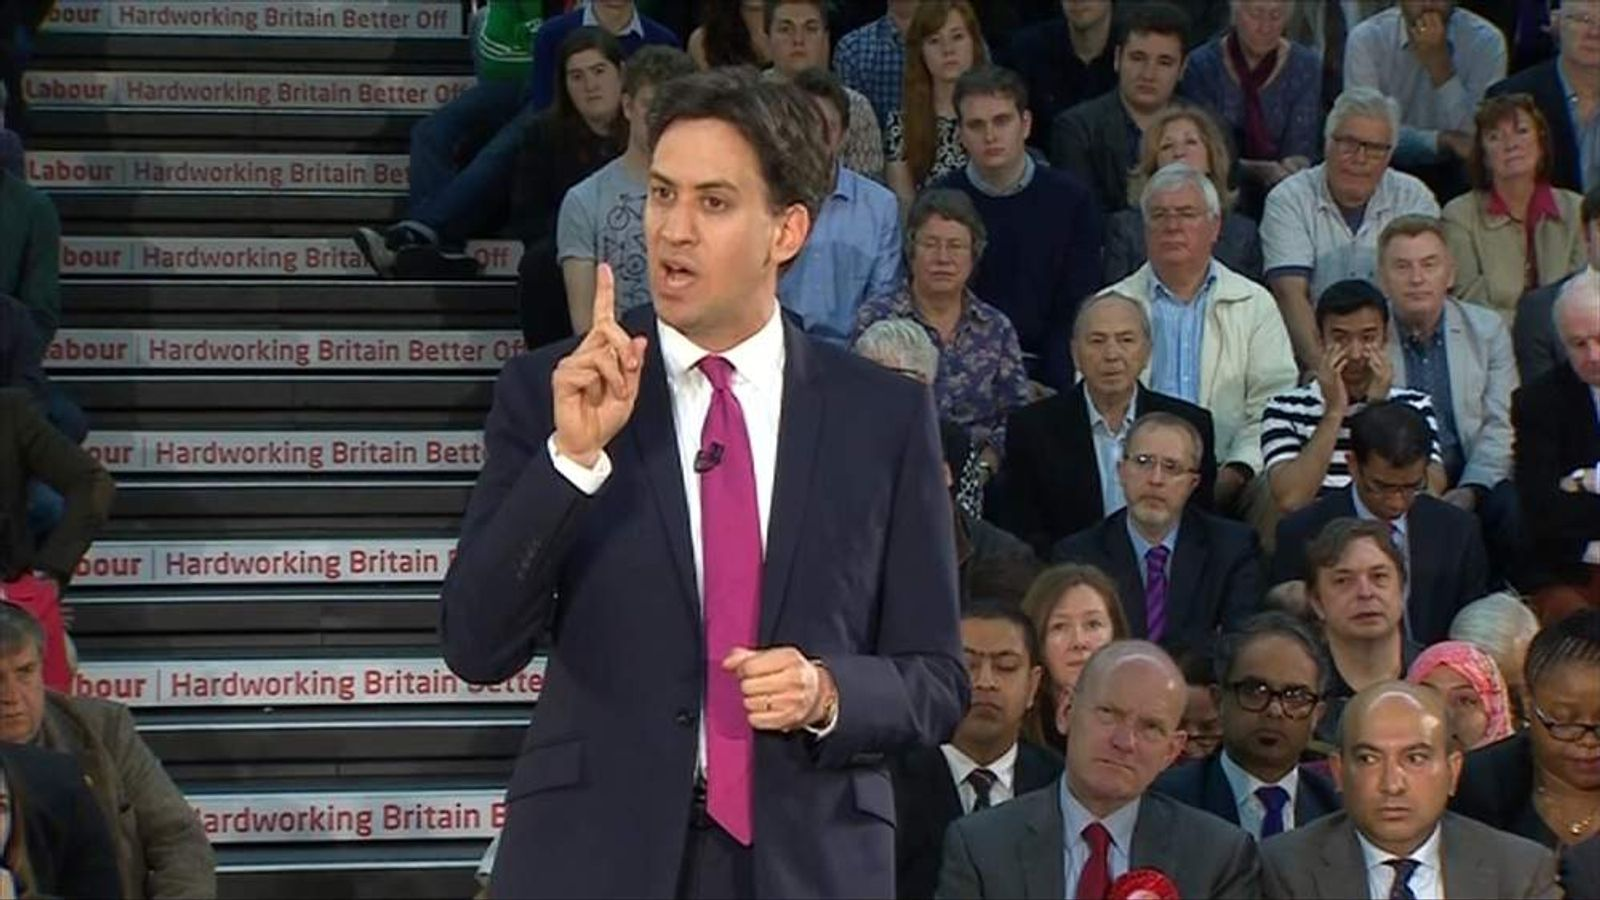 Labour Leader Ed Miliband announces plans to challenge landlords